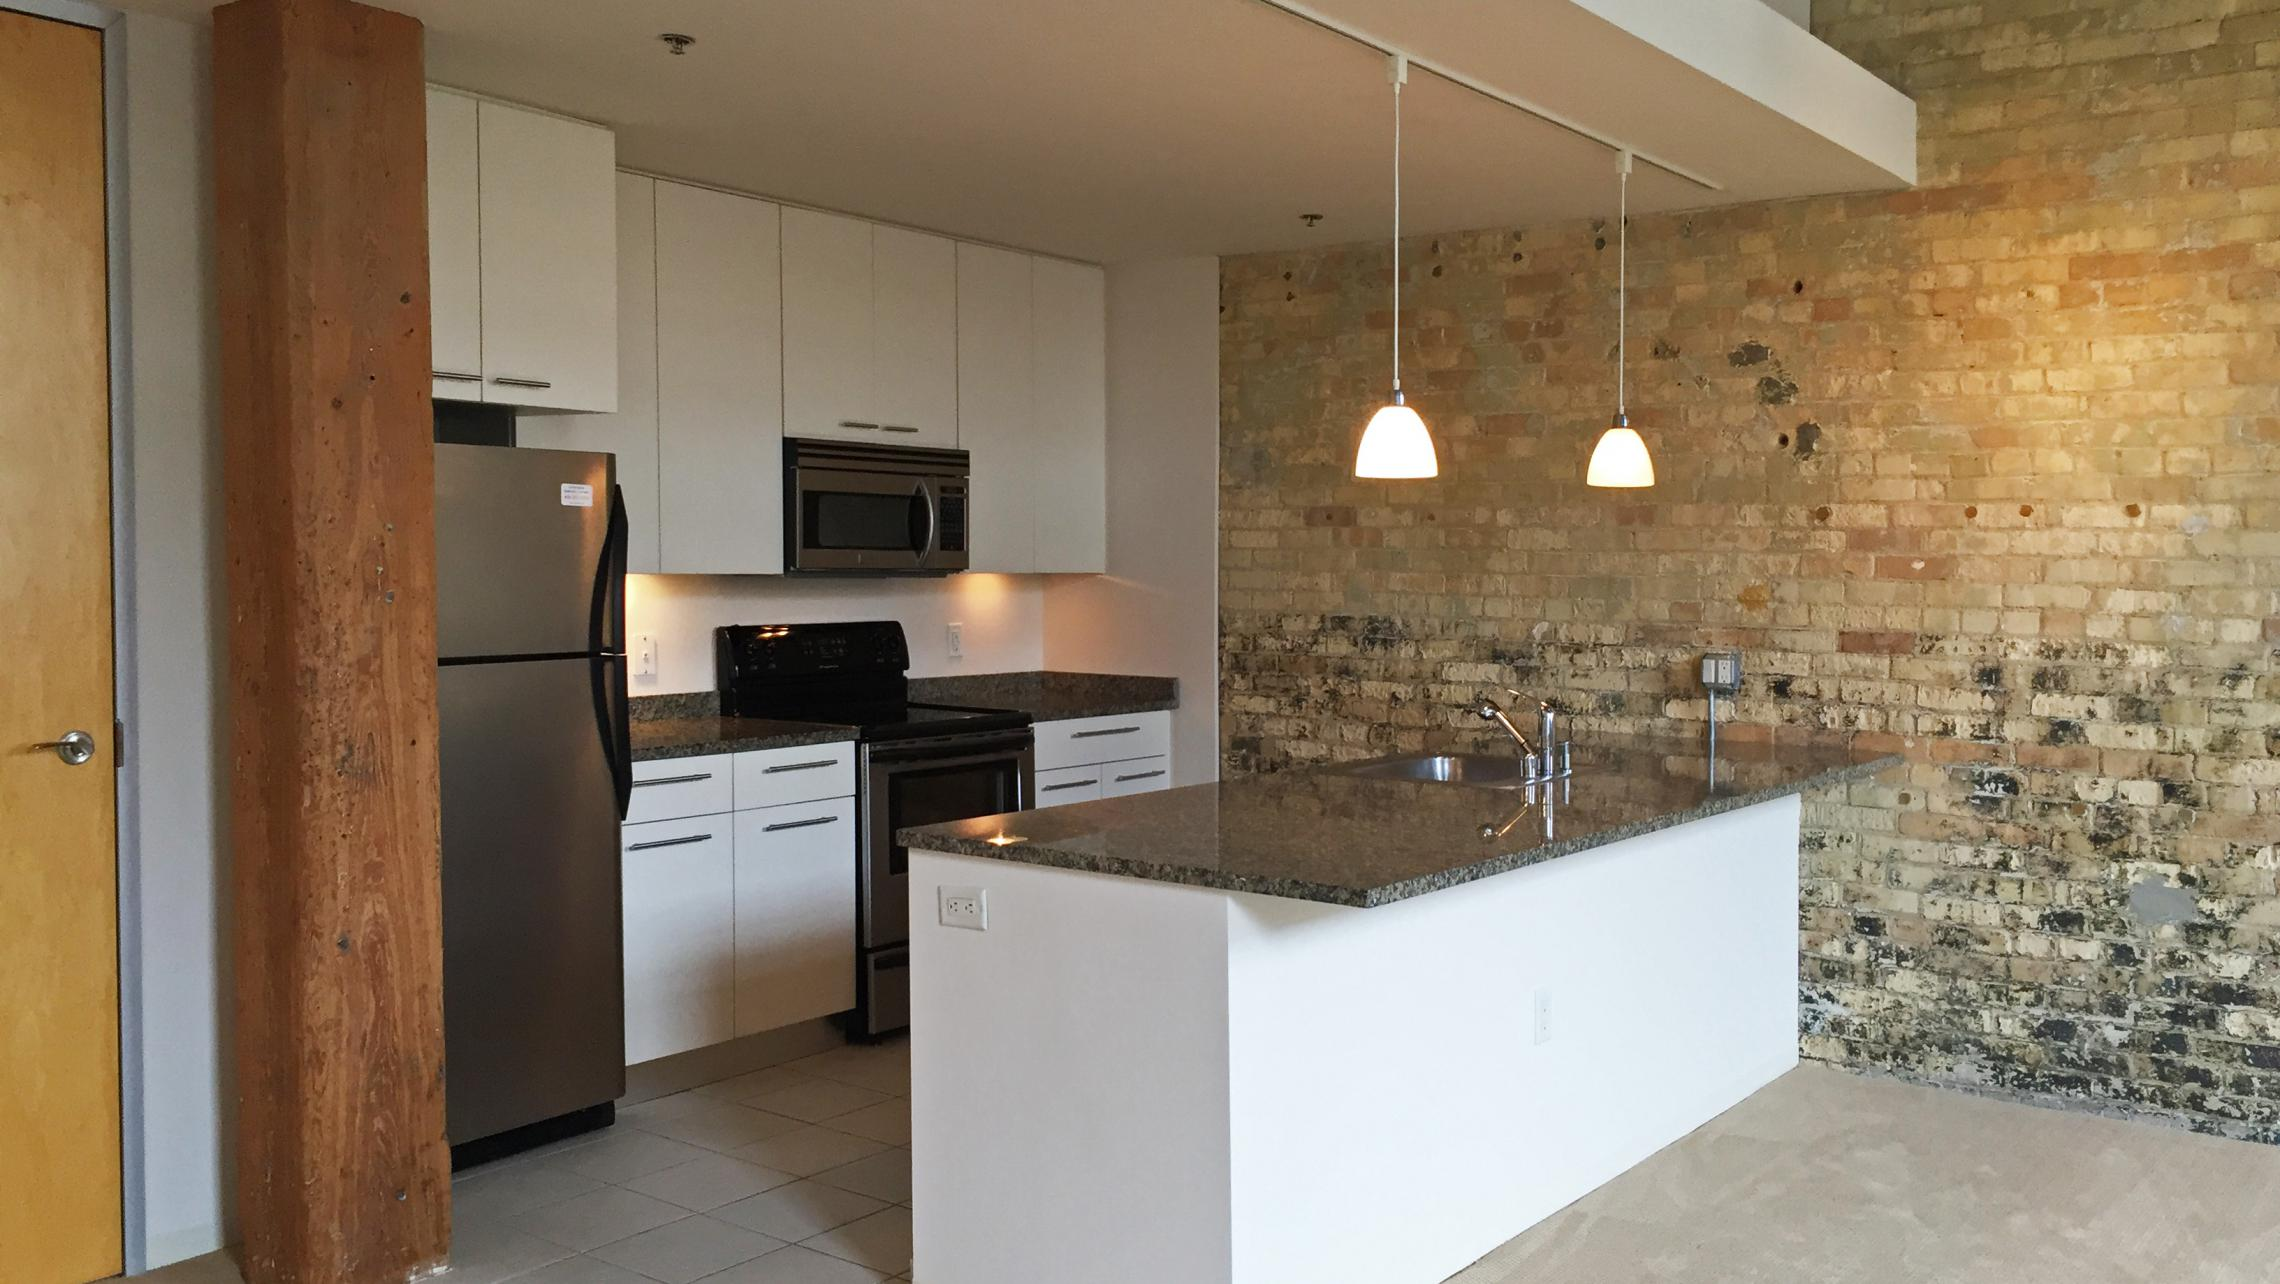 ULI Tobacco Lofts - E208 - Exposed Brick and Beams in Kitchen